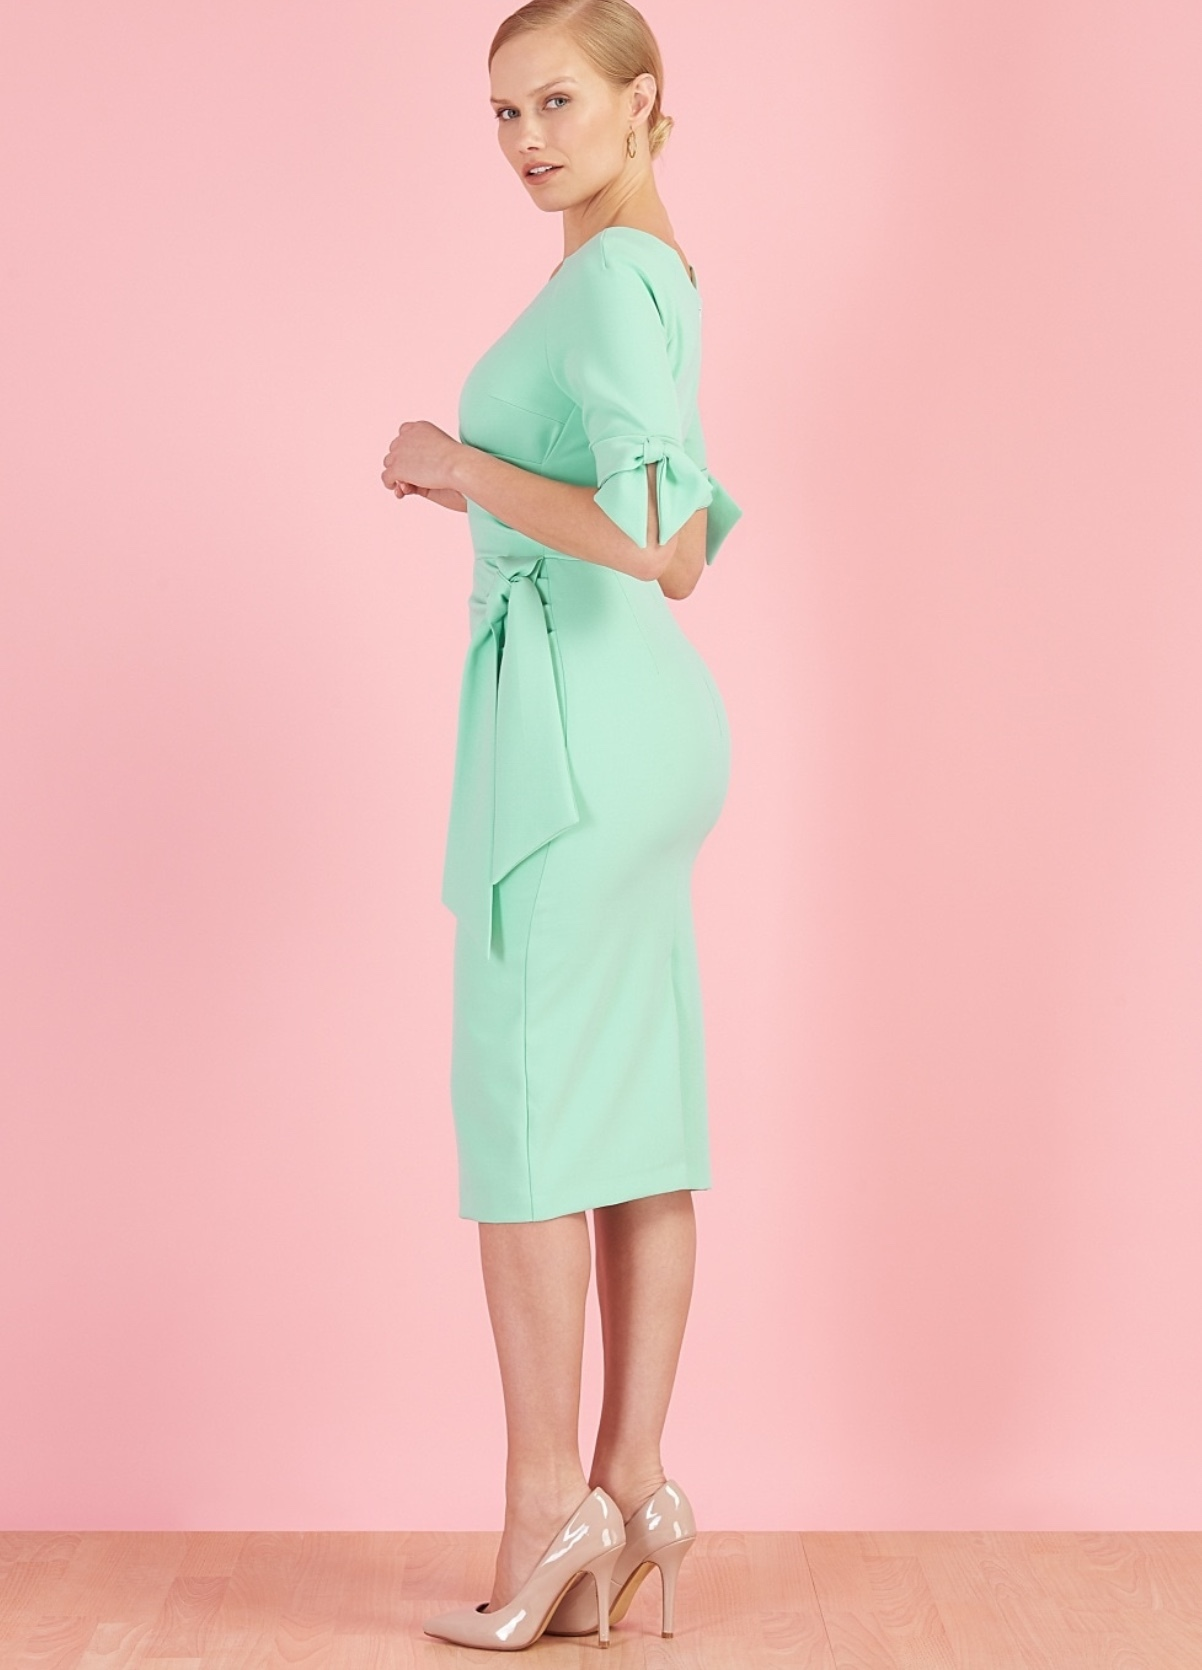 Hourglass Dress with Bows on Sleeves in Delicate Mint PDCHOURGLASS